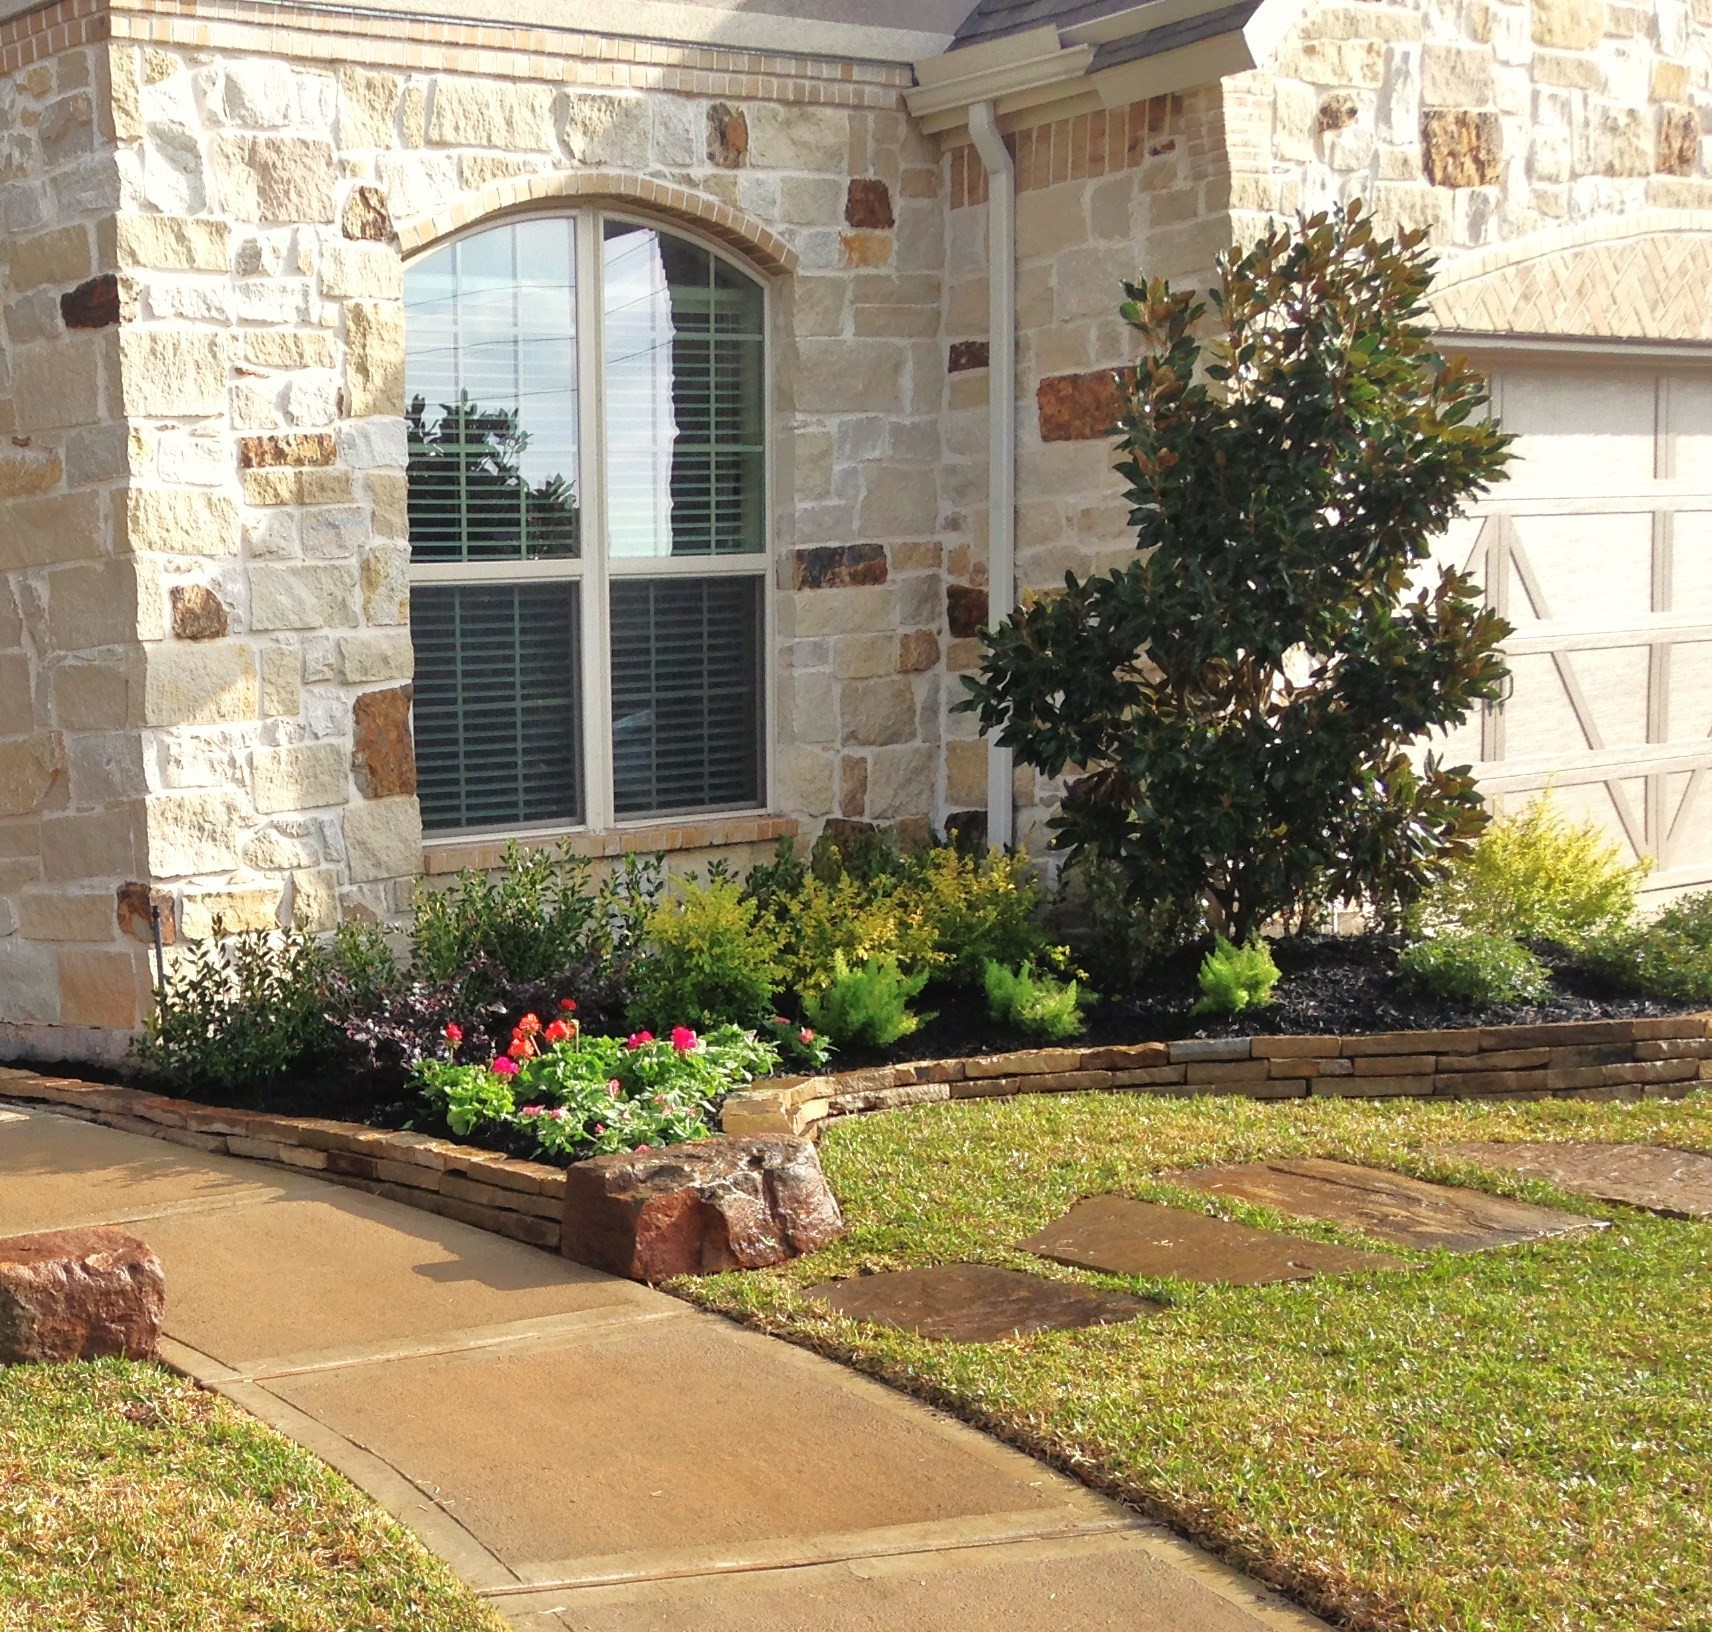 Landscaping Project North Texas: MLS Landscape Restoration